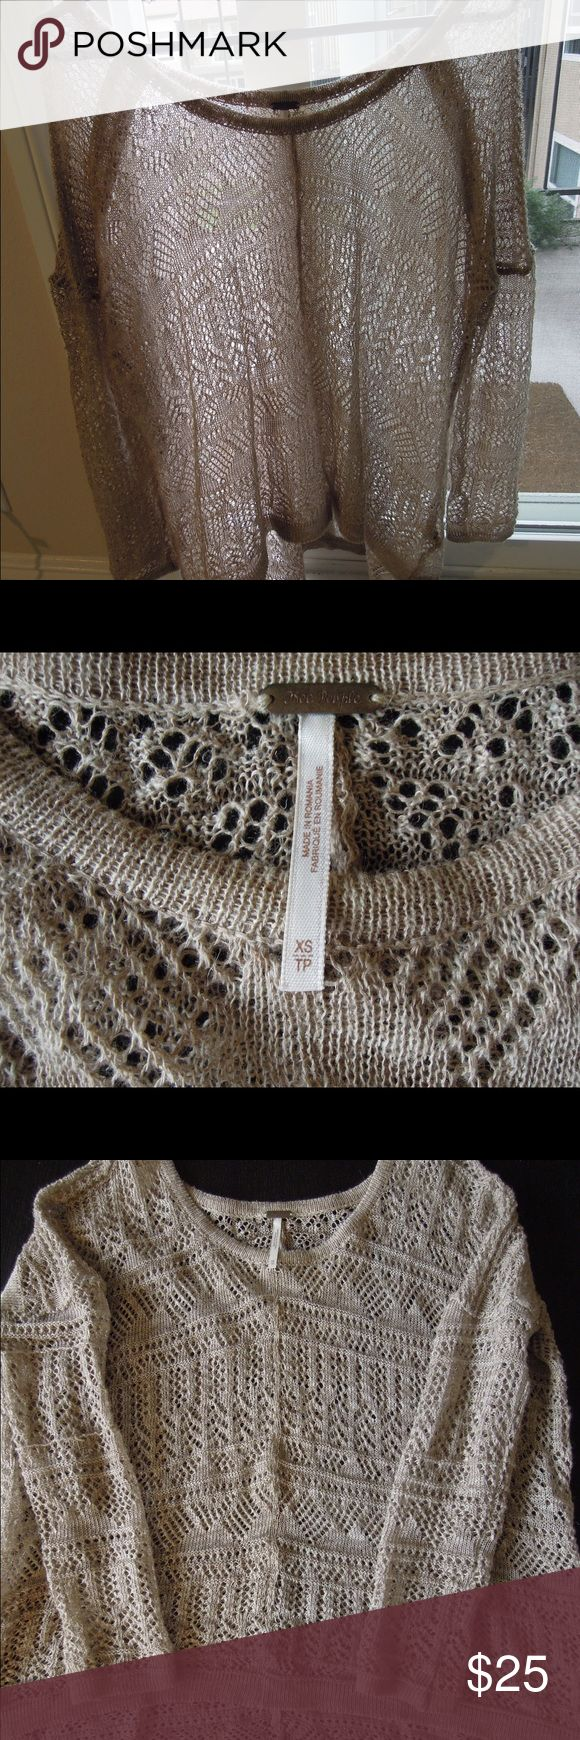 Free People lightweight layer This dark beige knit sweater is best for layering over a nude cami. It is very delicate and fits very loosely, and can be hand washed or dry cleaned. Free People Tops Tunics